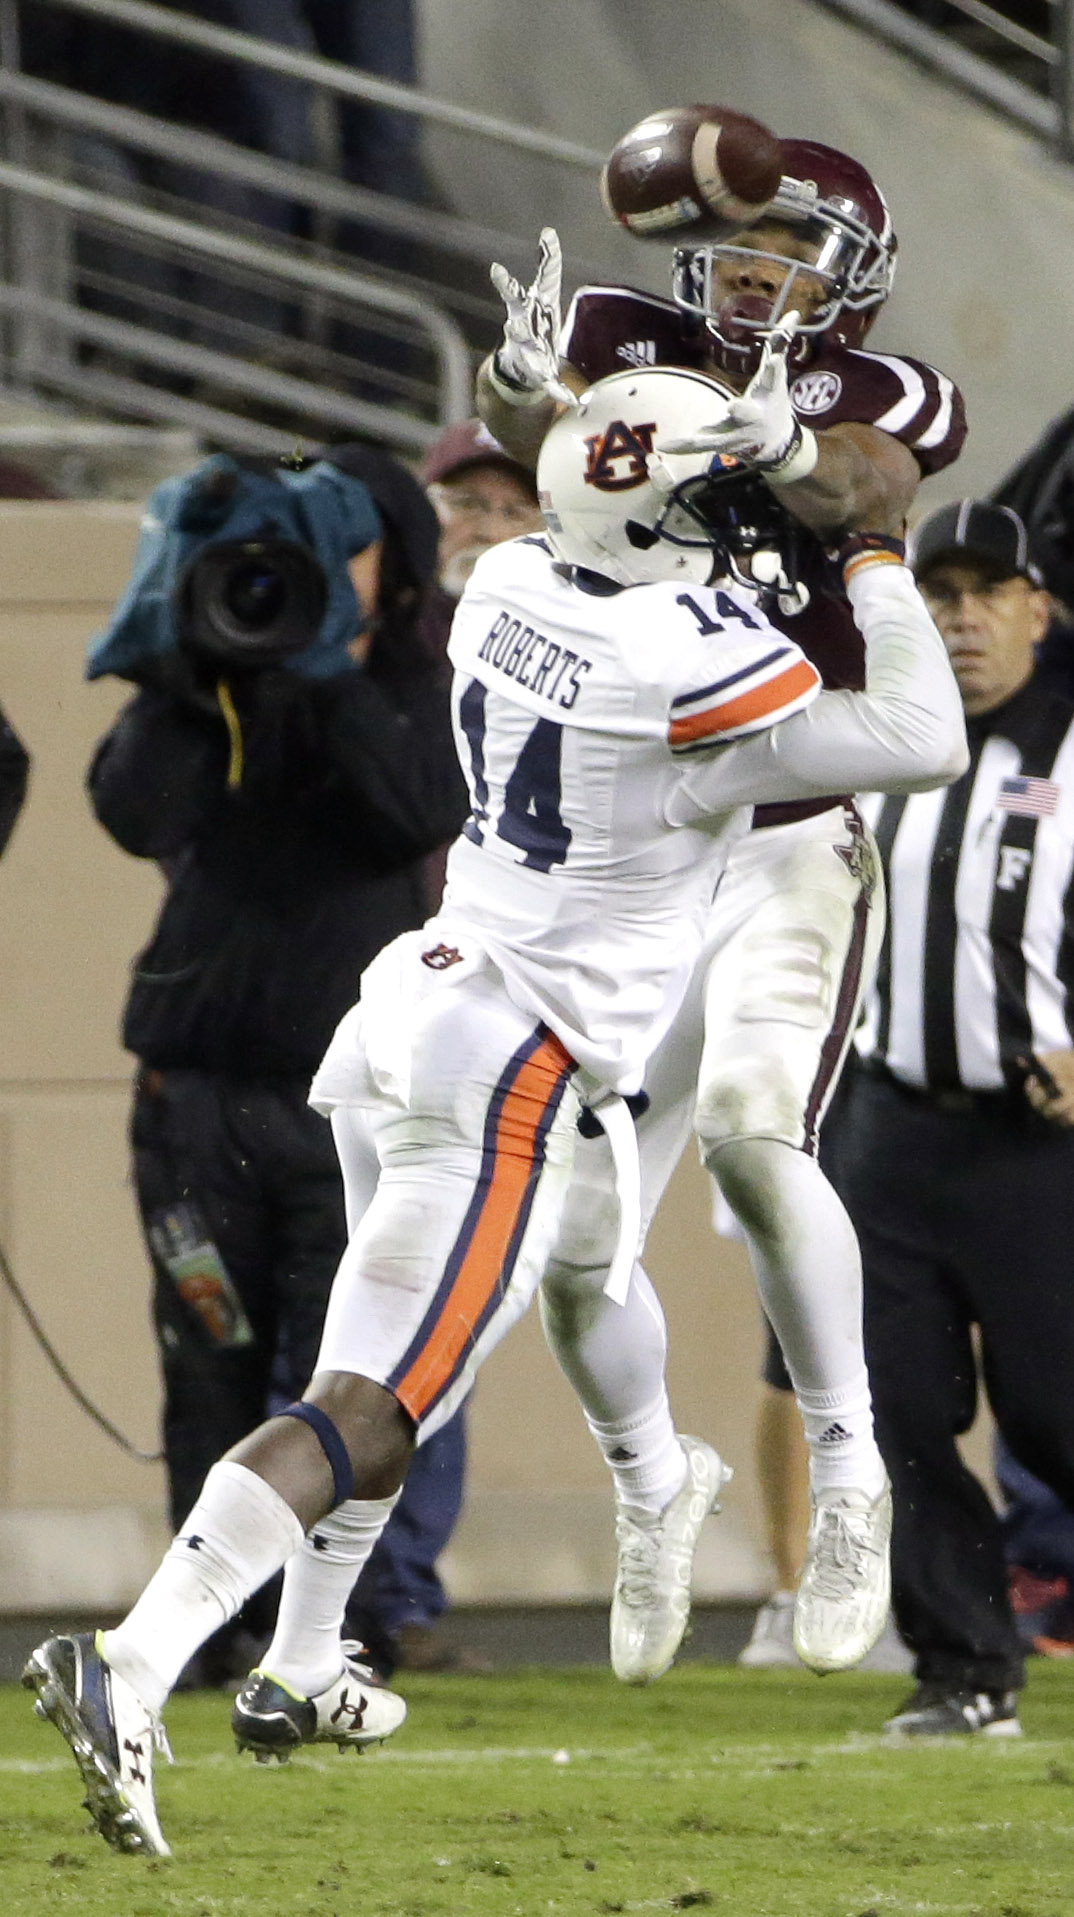 Auburn defensive back Stephen Roberts (14) breaks up a pass intended for Texas A&M wide receiver Christian Kirk during the second half of an NCAA college football game Saturday, Nov. 7, 2015, in College Station, Texas. Roberts was called for pass interfer